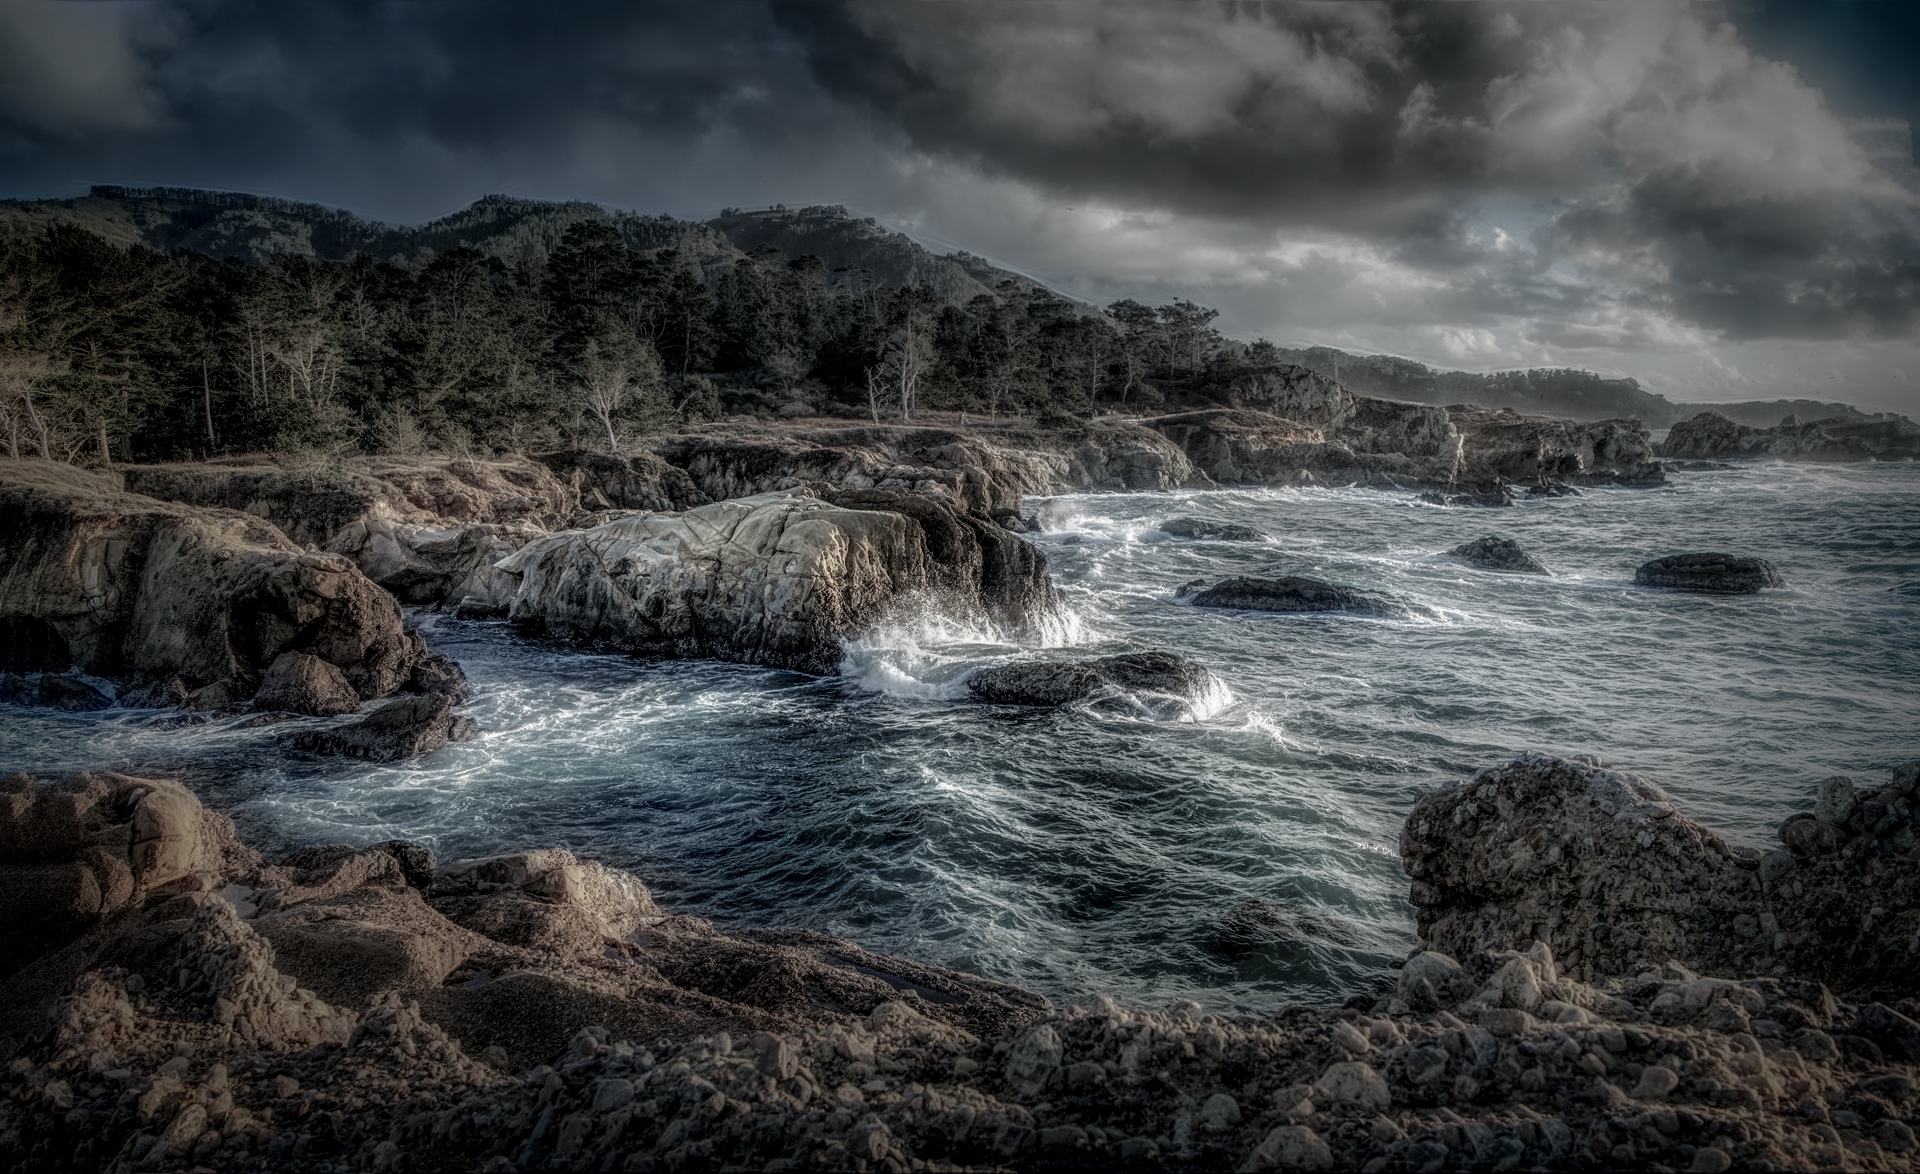 'Stormy Weather On The California Coast' (CA Best in Show) by Barry Zupan - LV